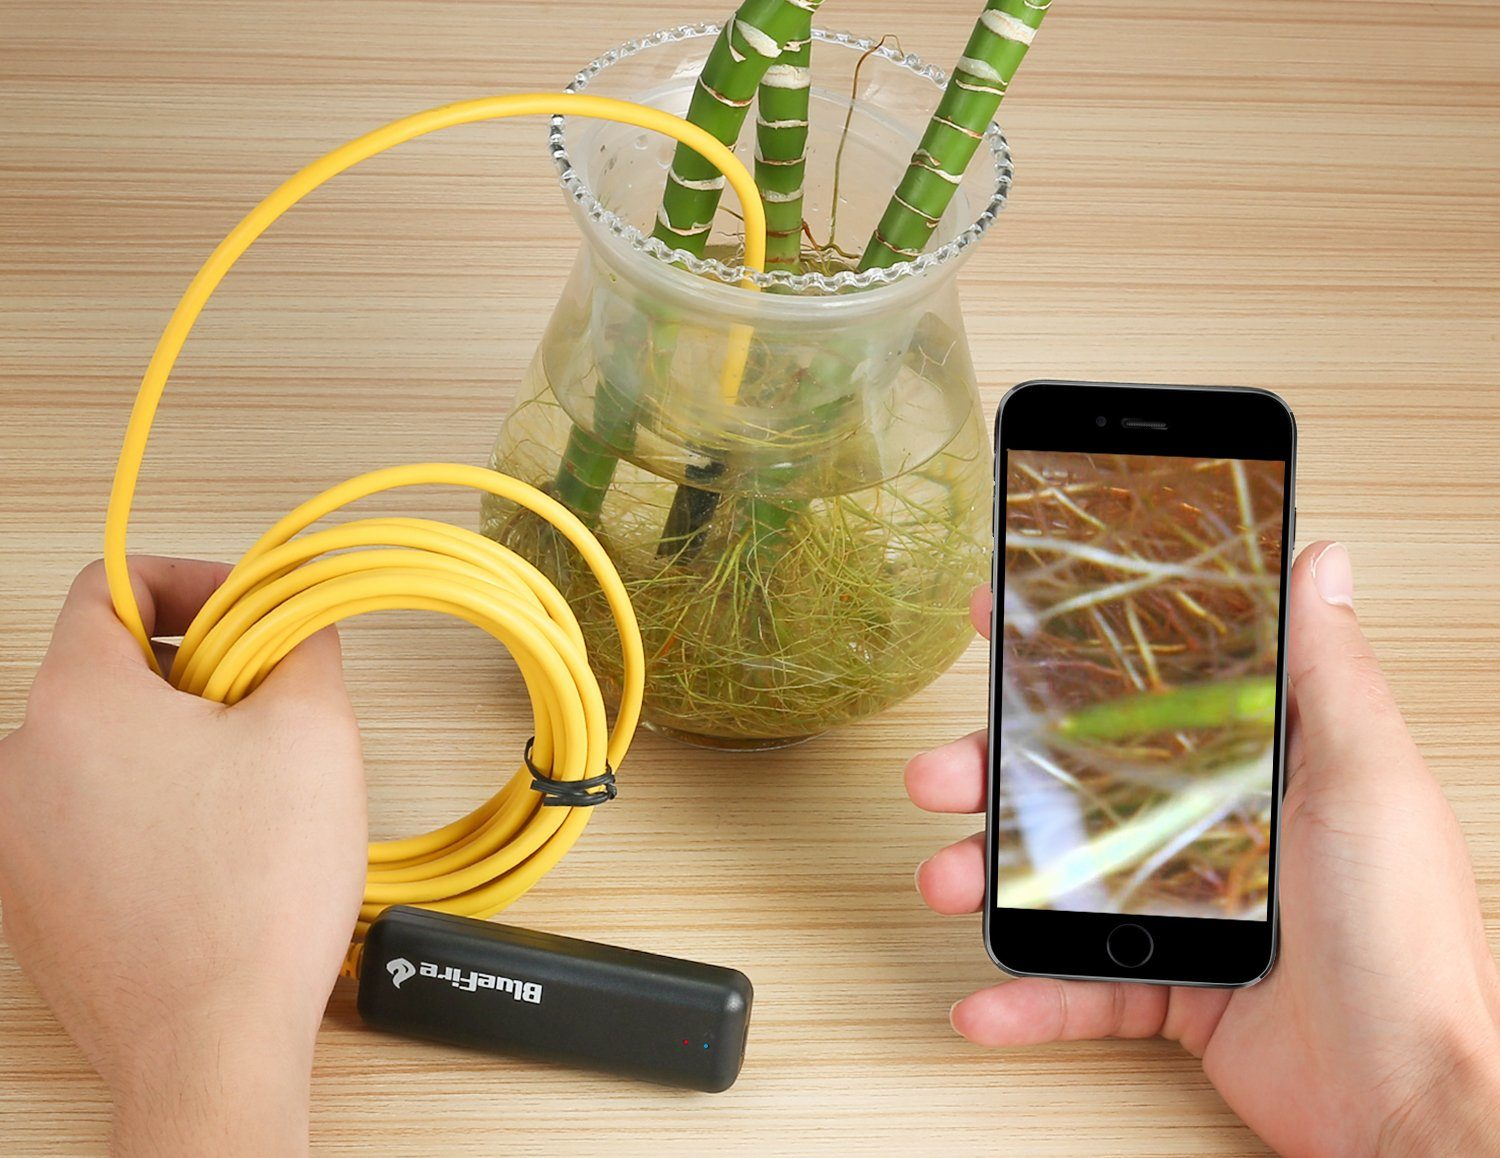 BlueFire Semi-Rigid Flexible Wireless Endoscope camera